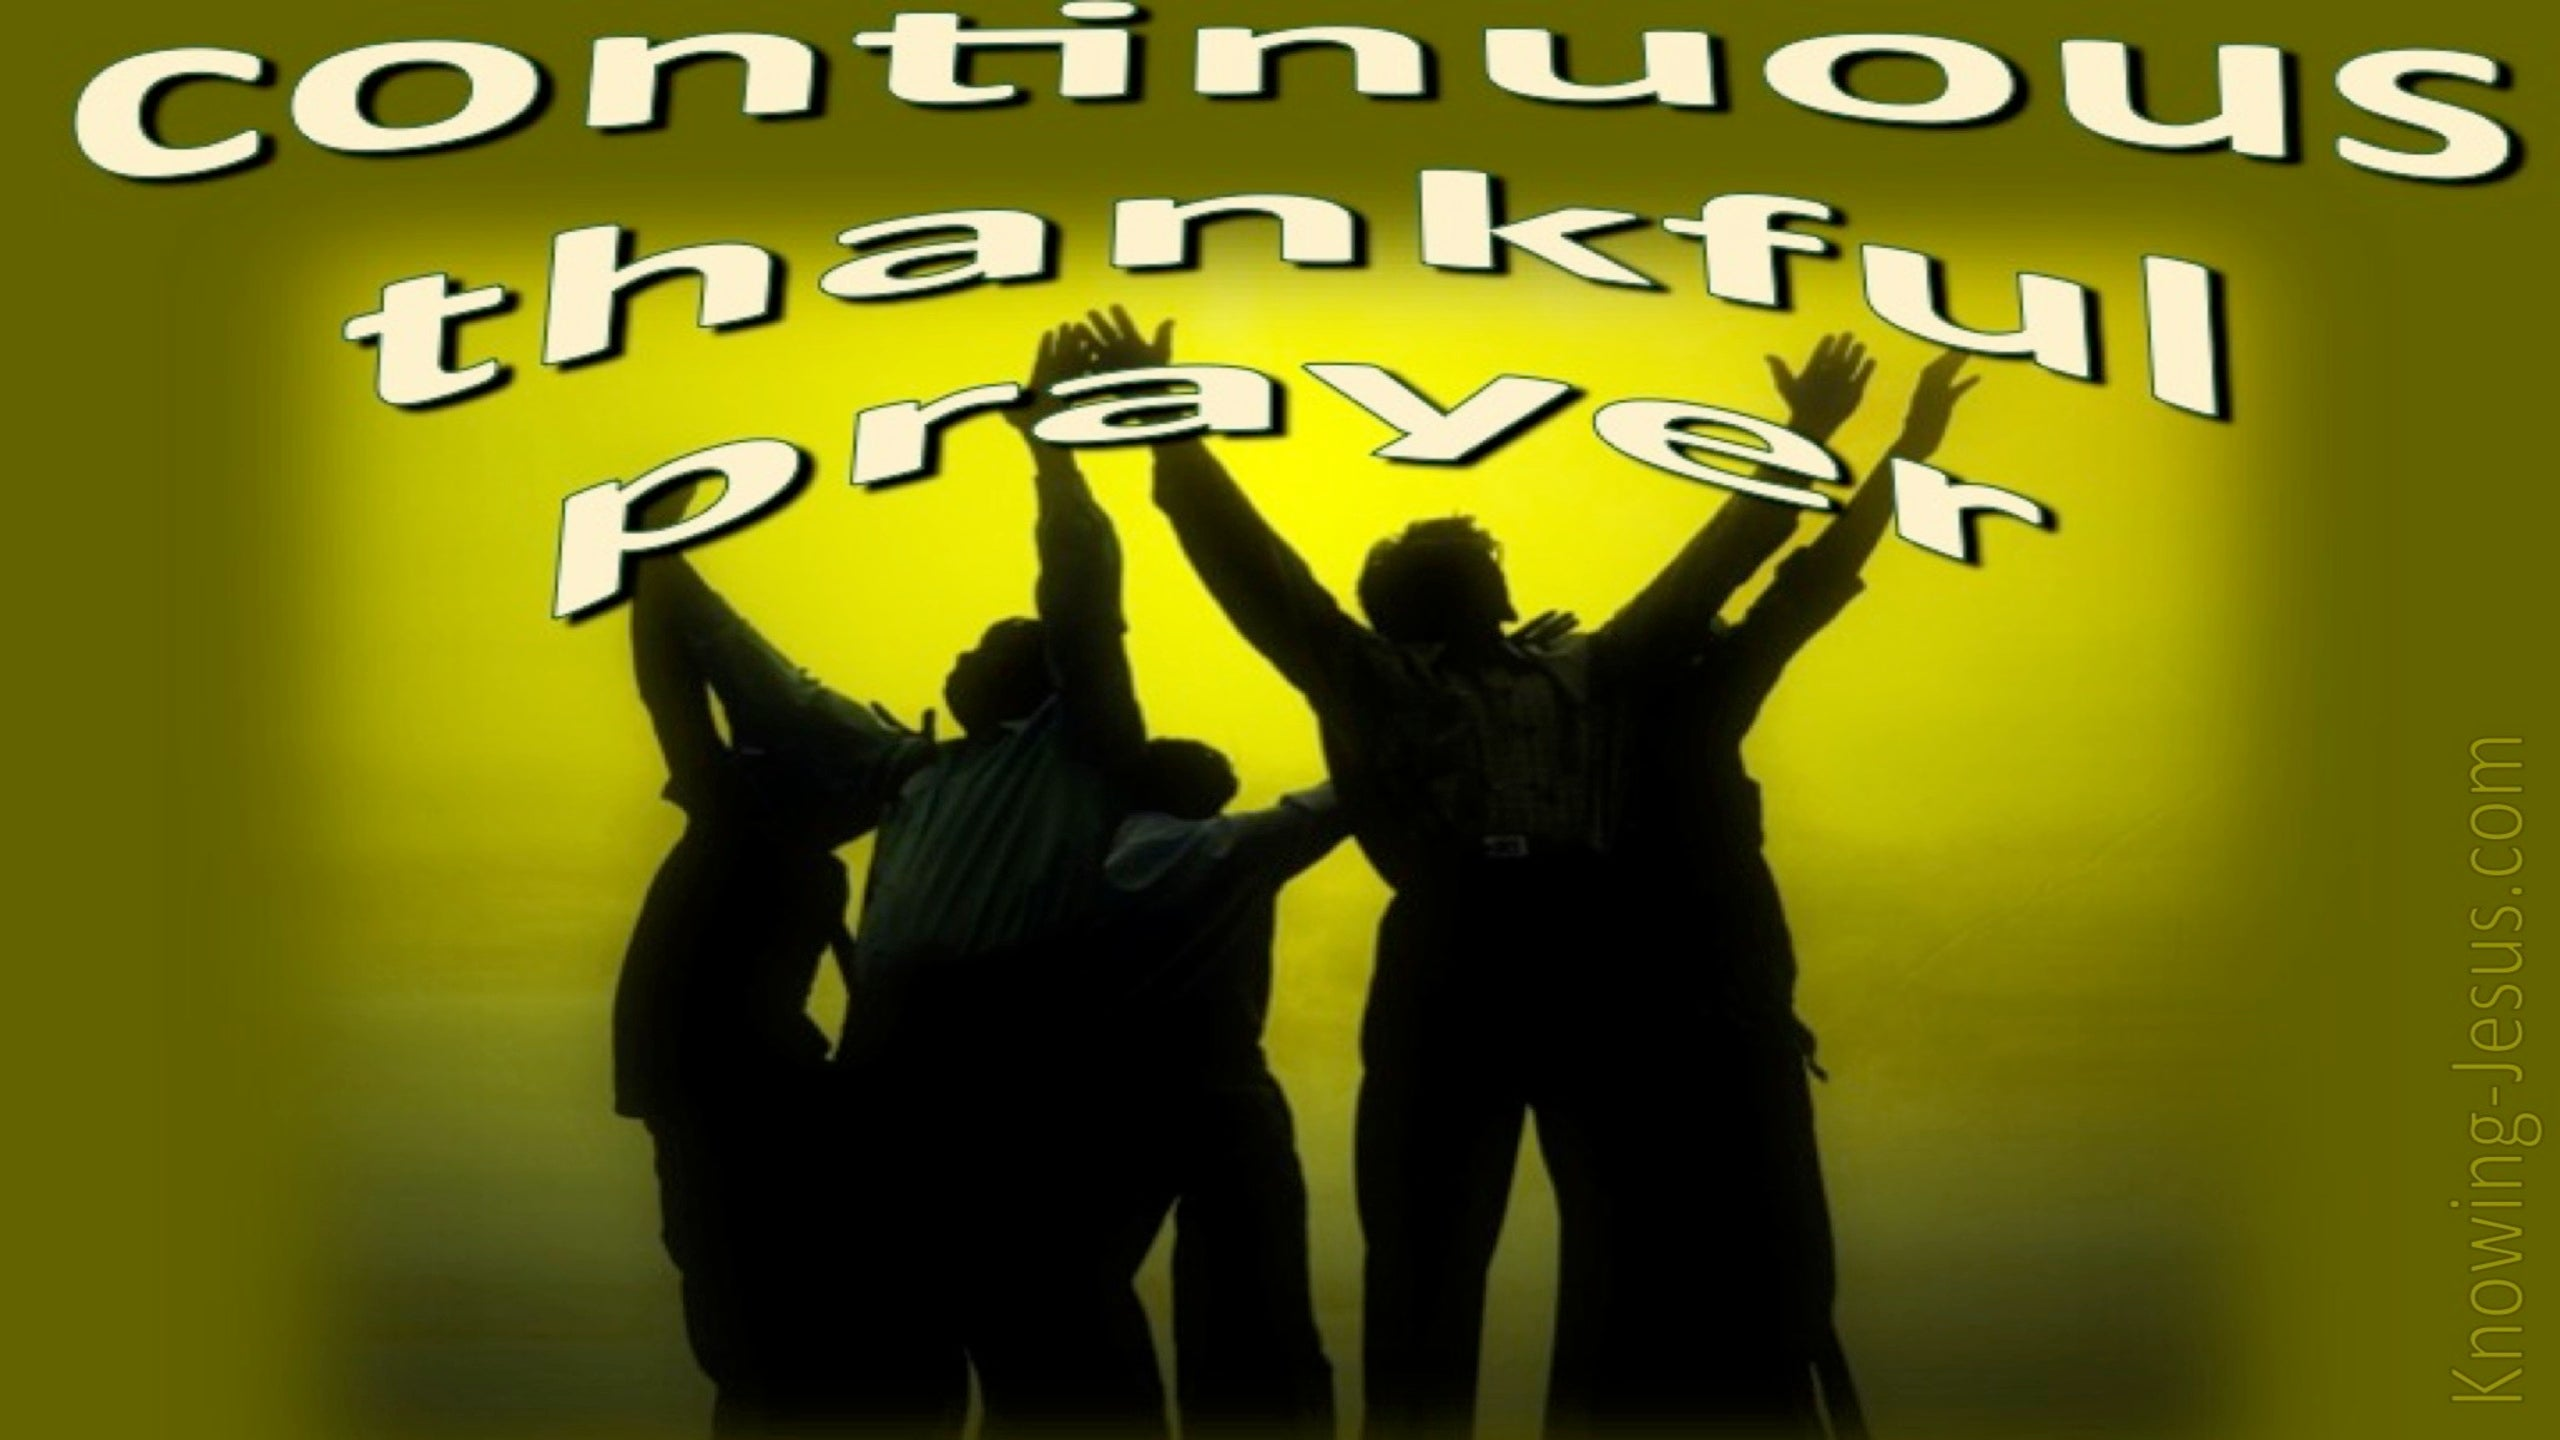 Continuing Thankful Prayer (devotional) (green)